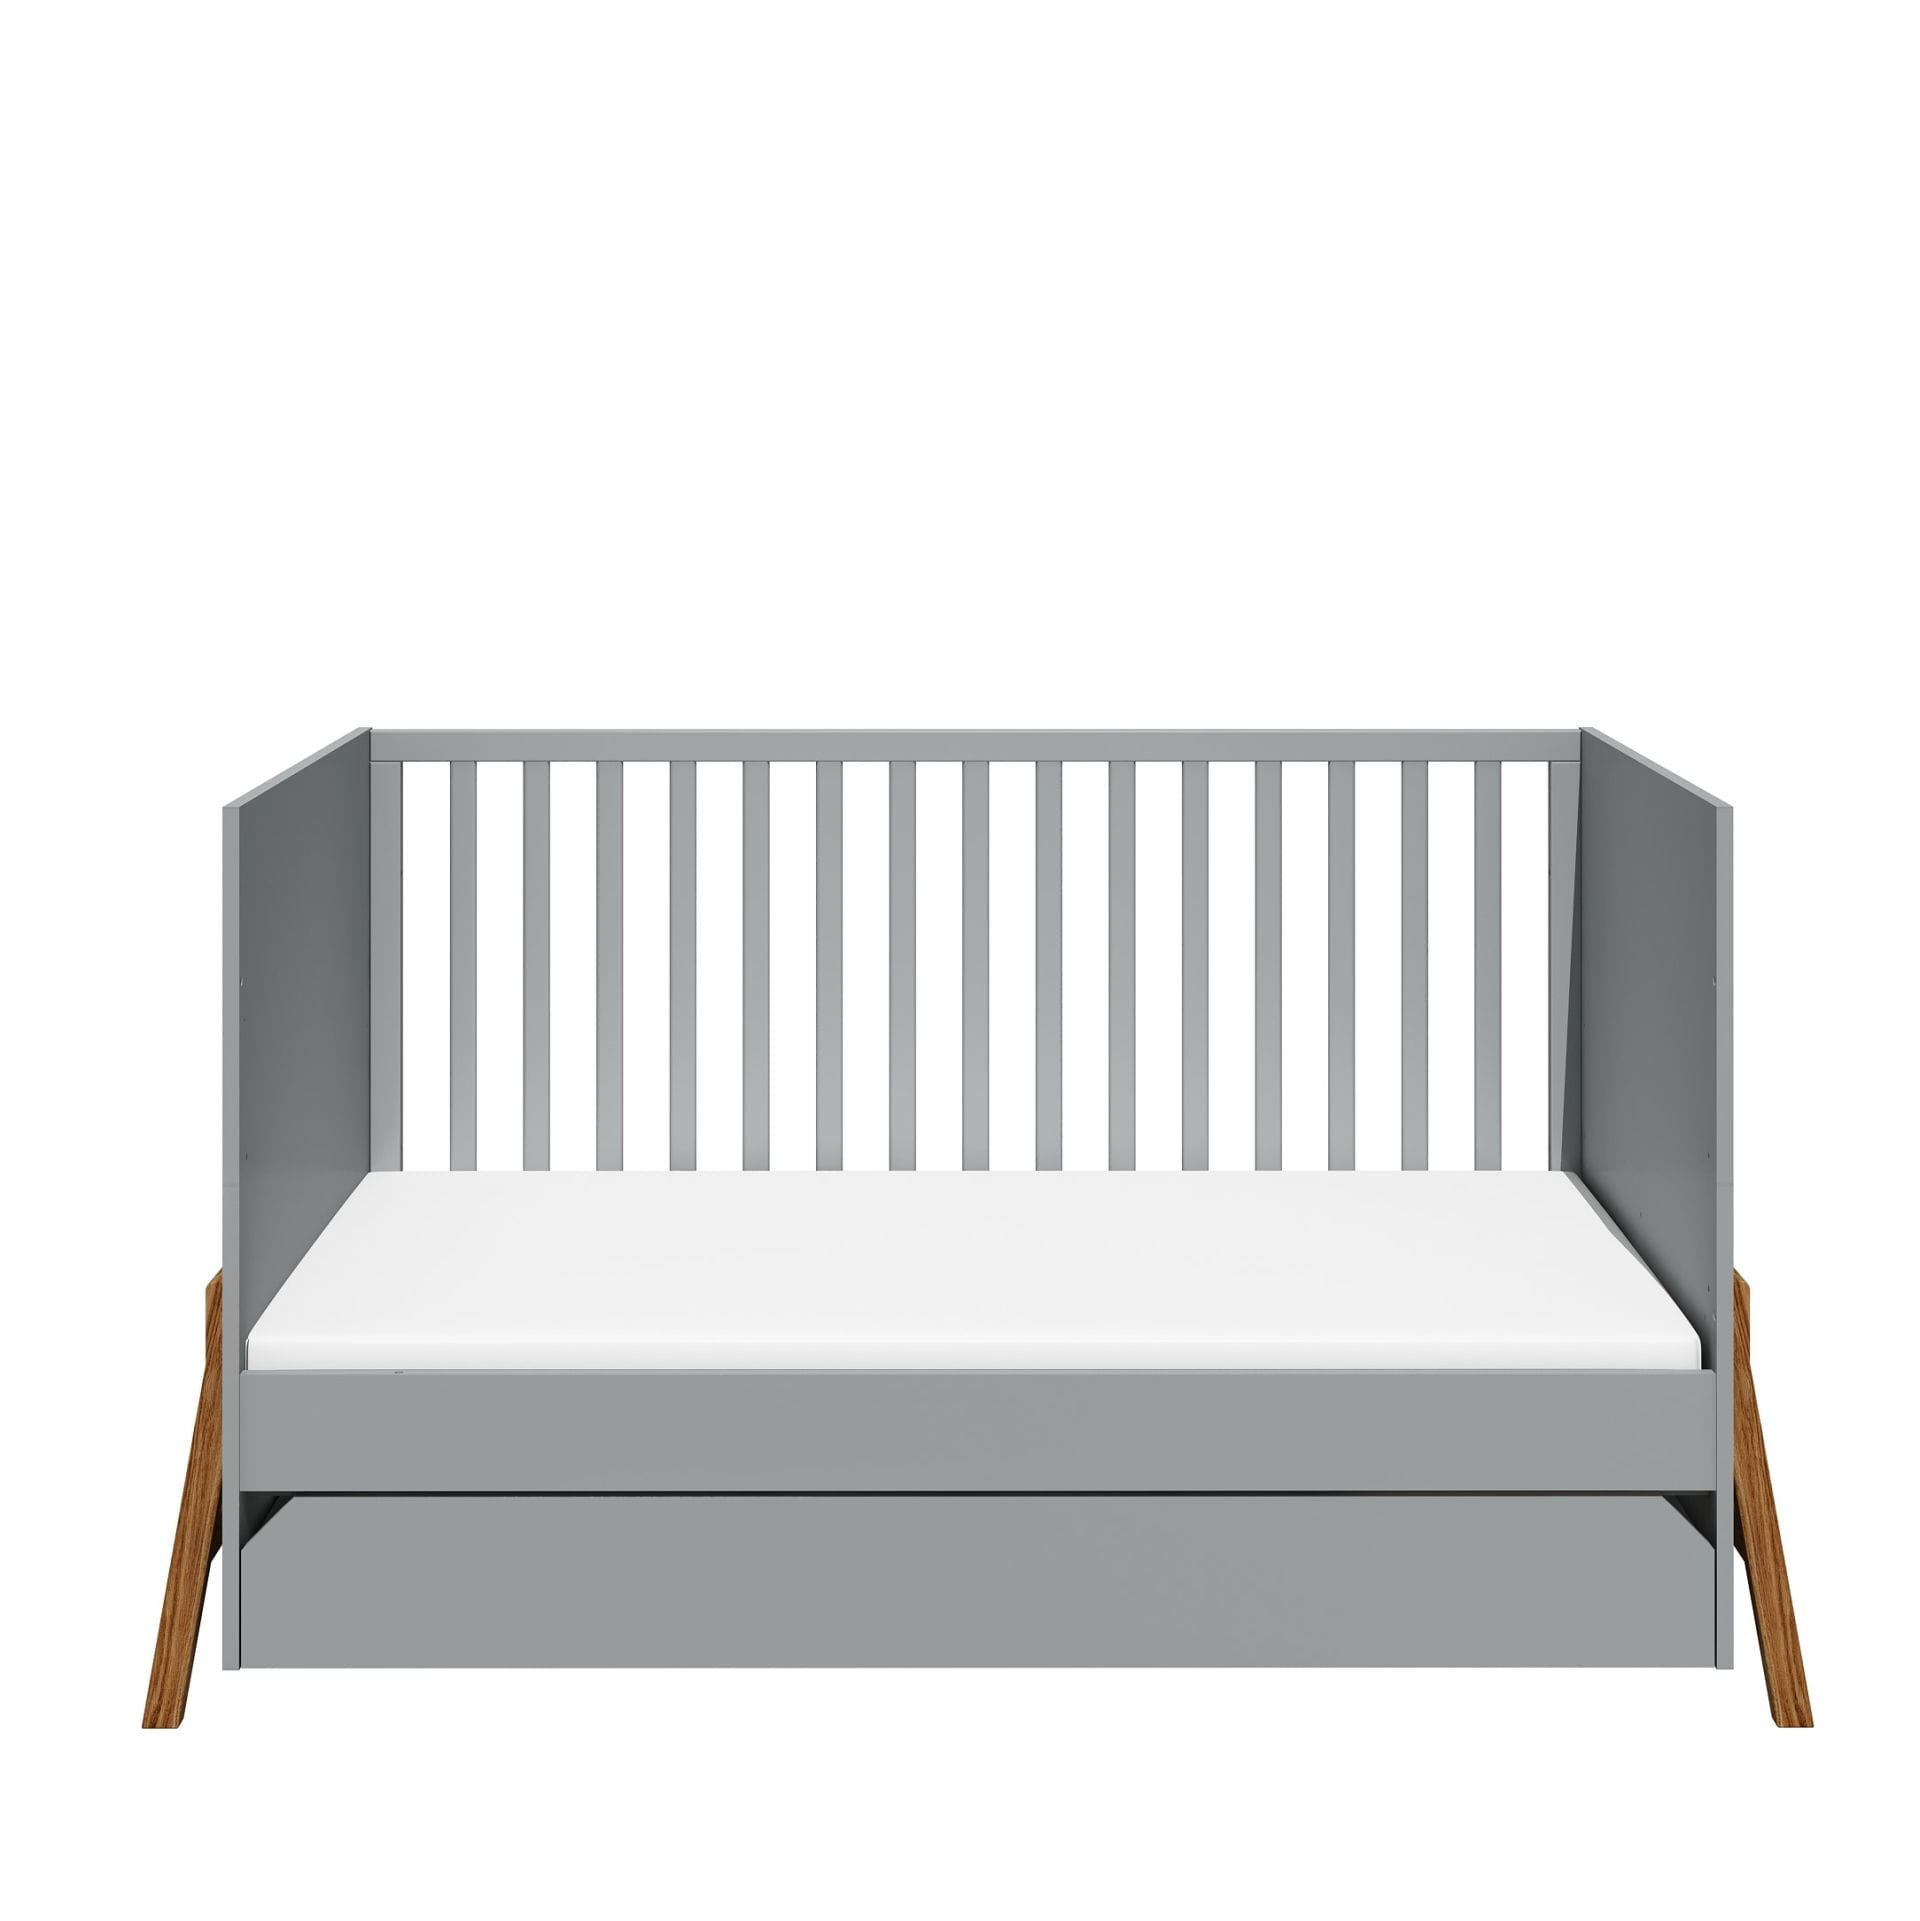 Lotta_gray_cot_bed_70x140_sofa_01.jpg